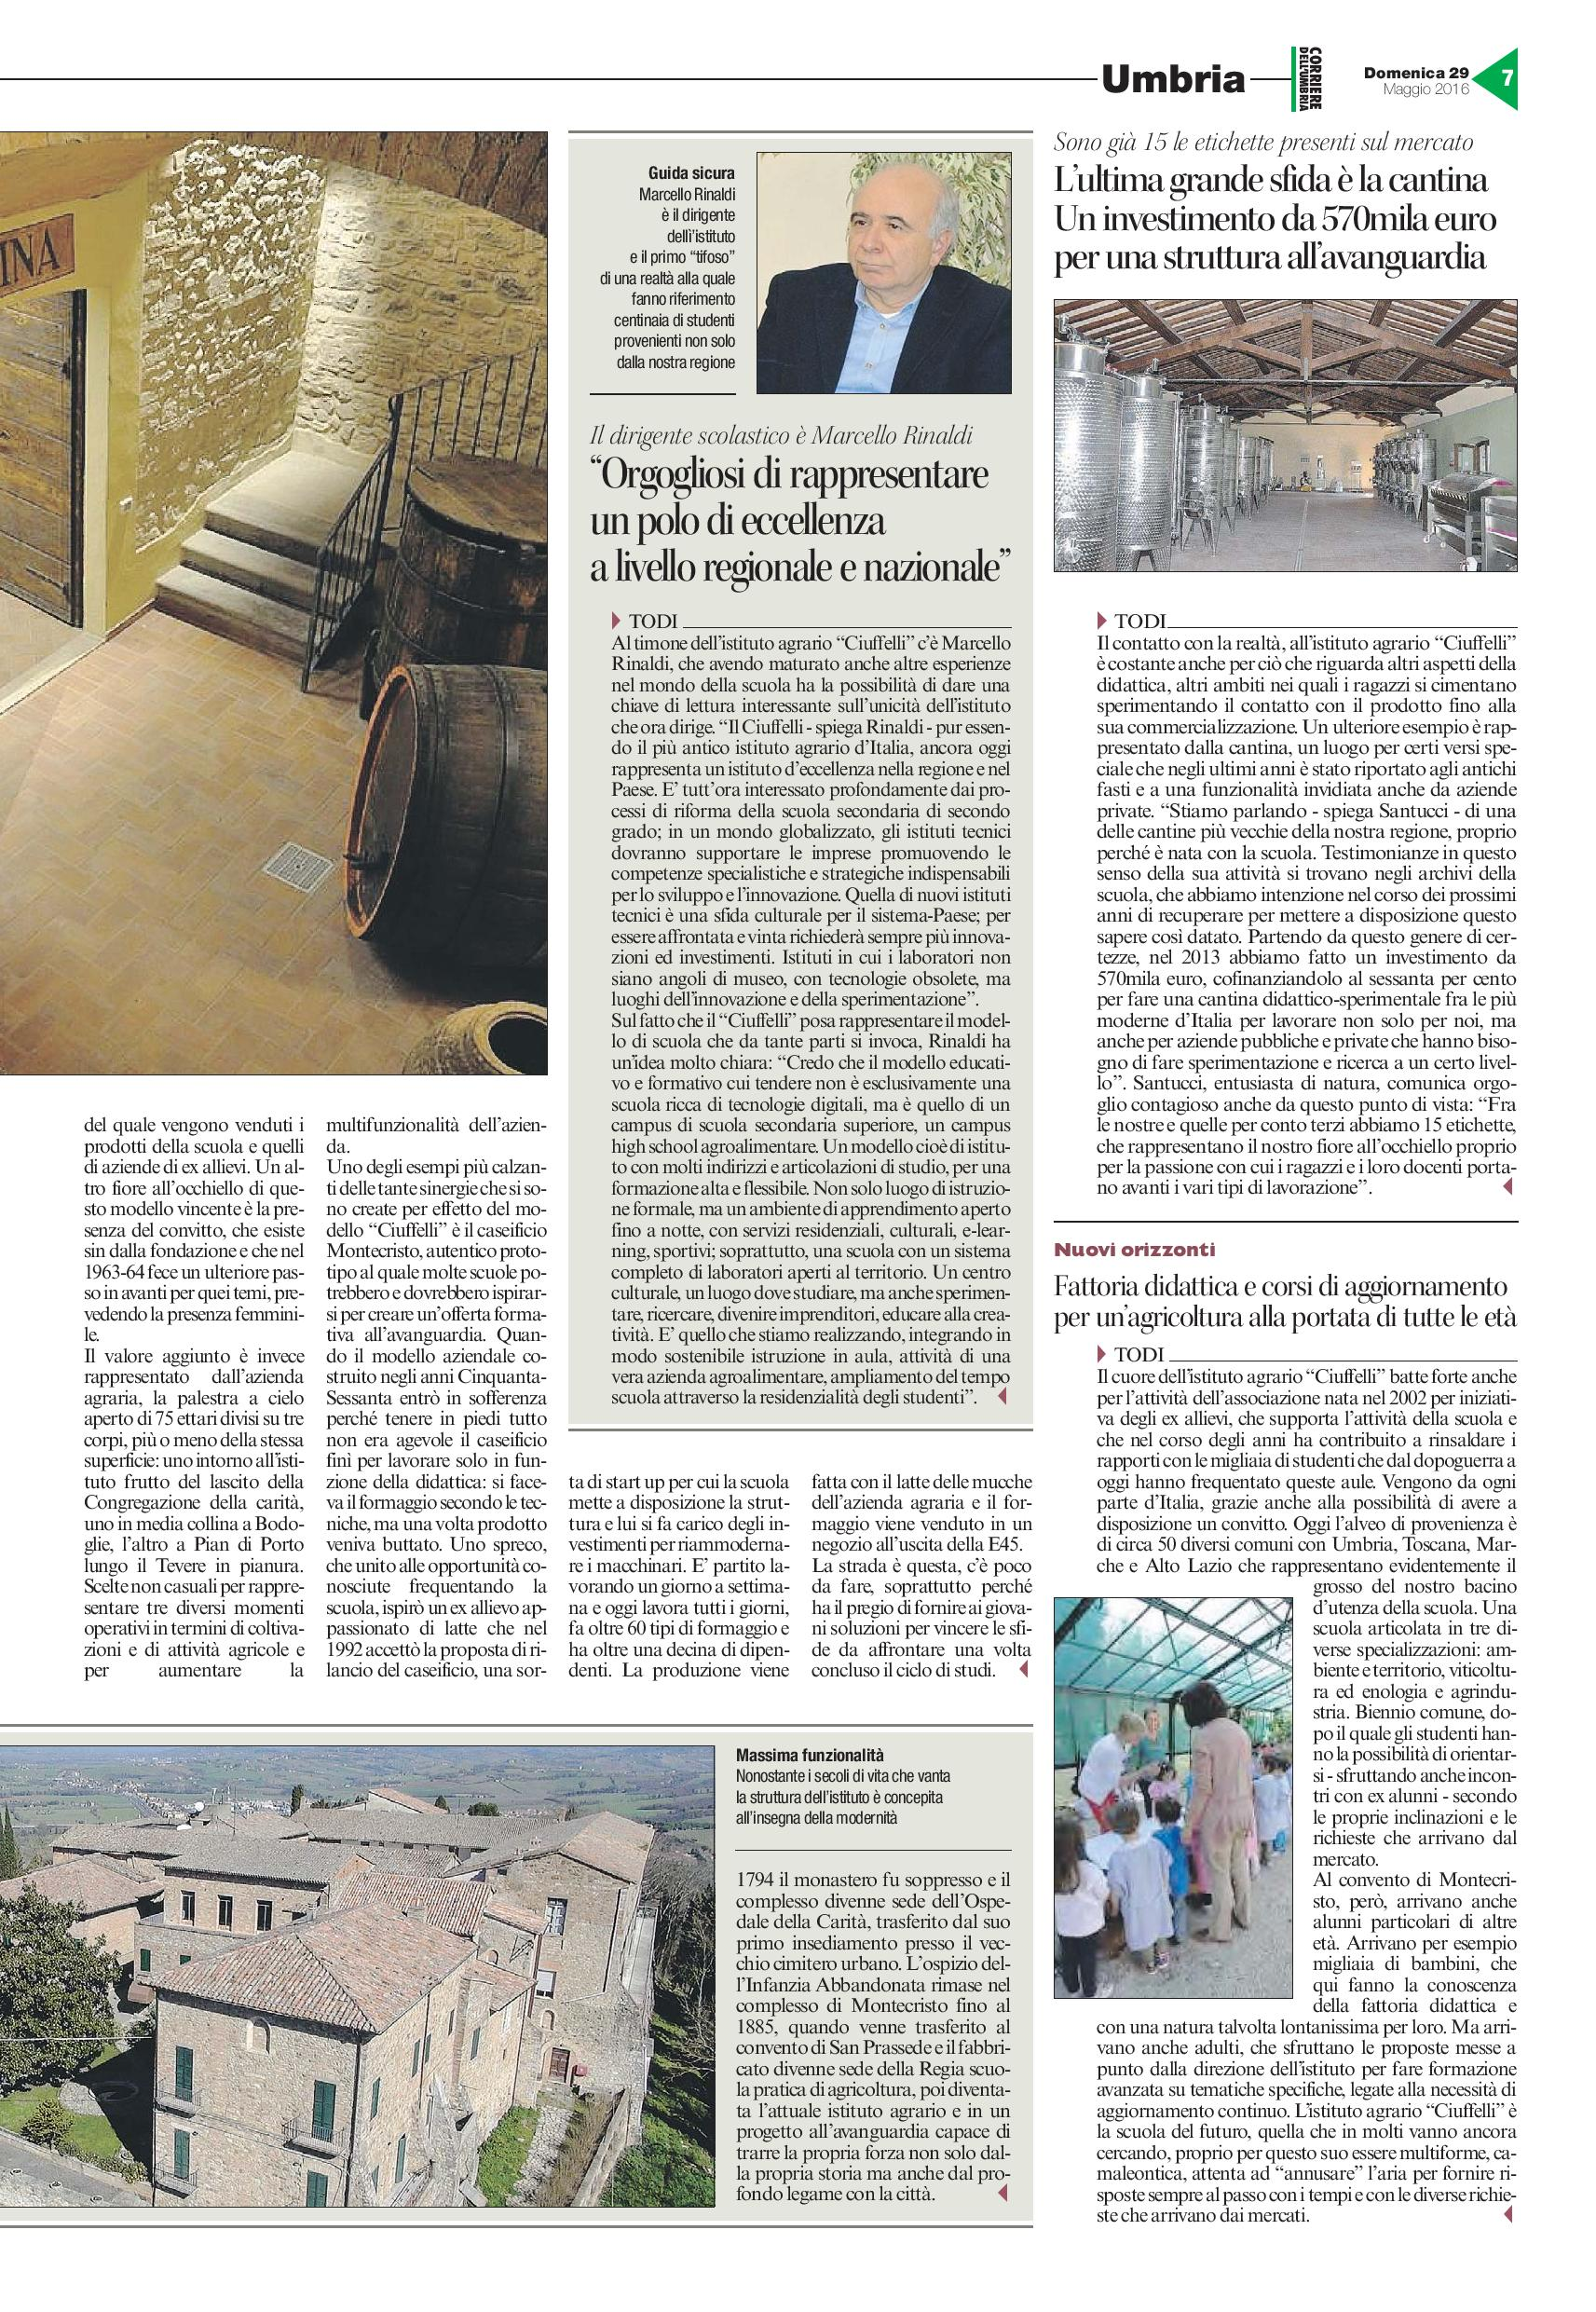 agraria_corriereumbria_29052016_pag2-page-001